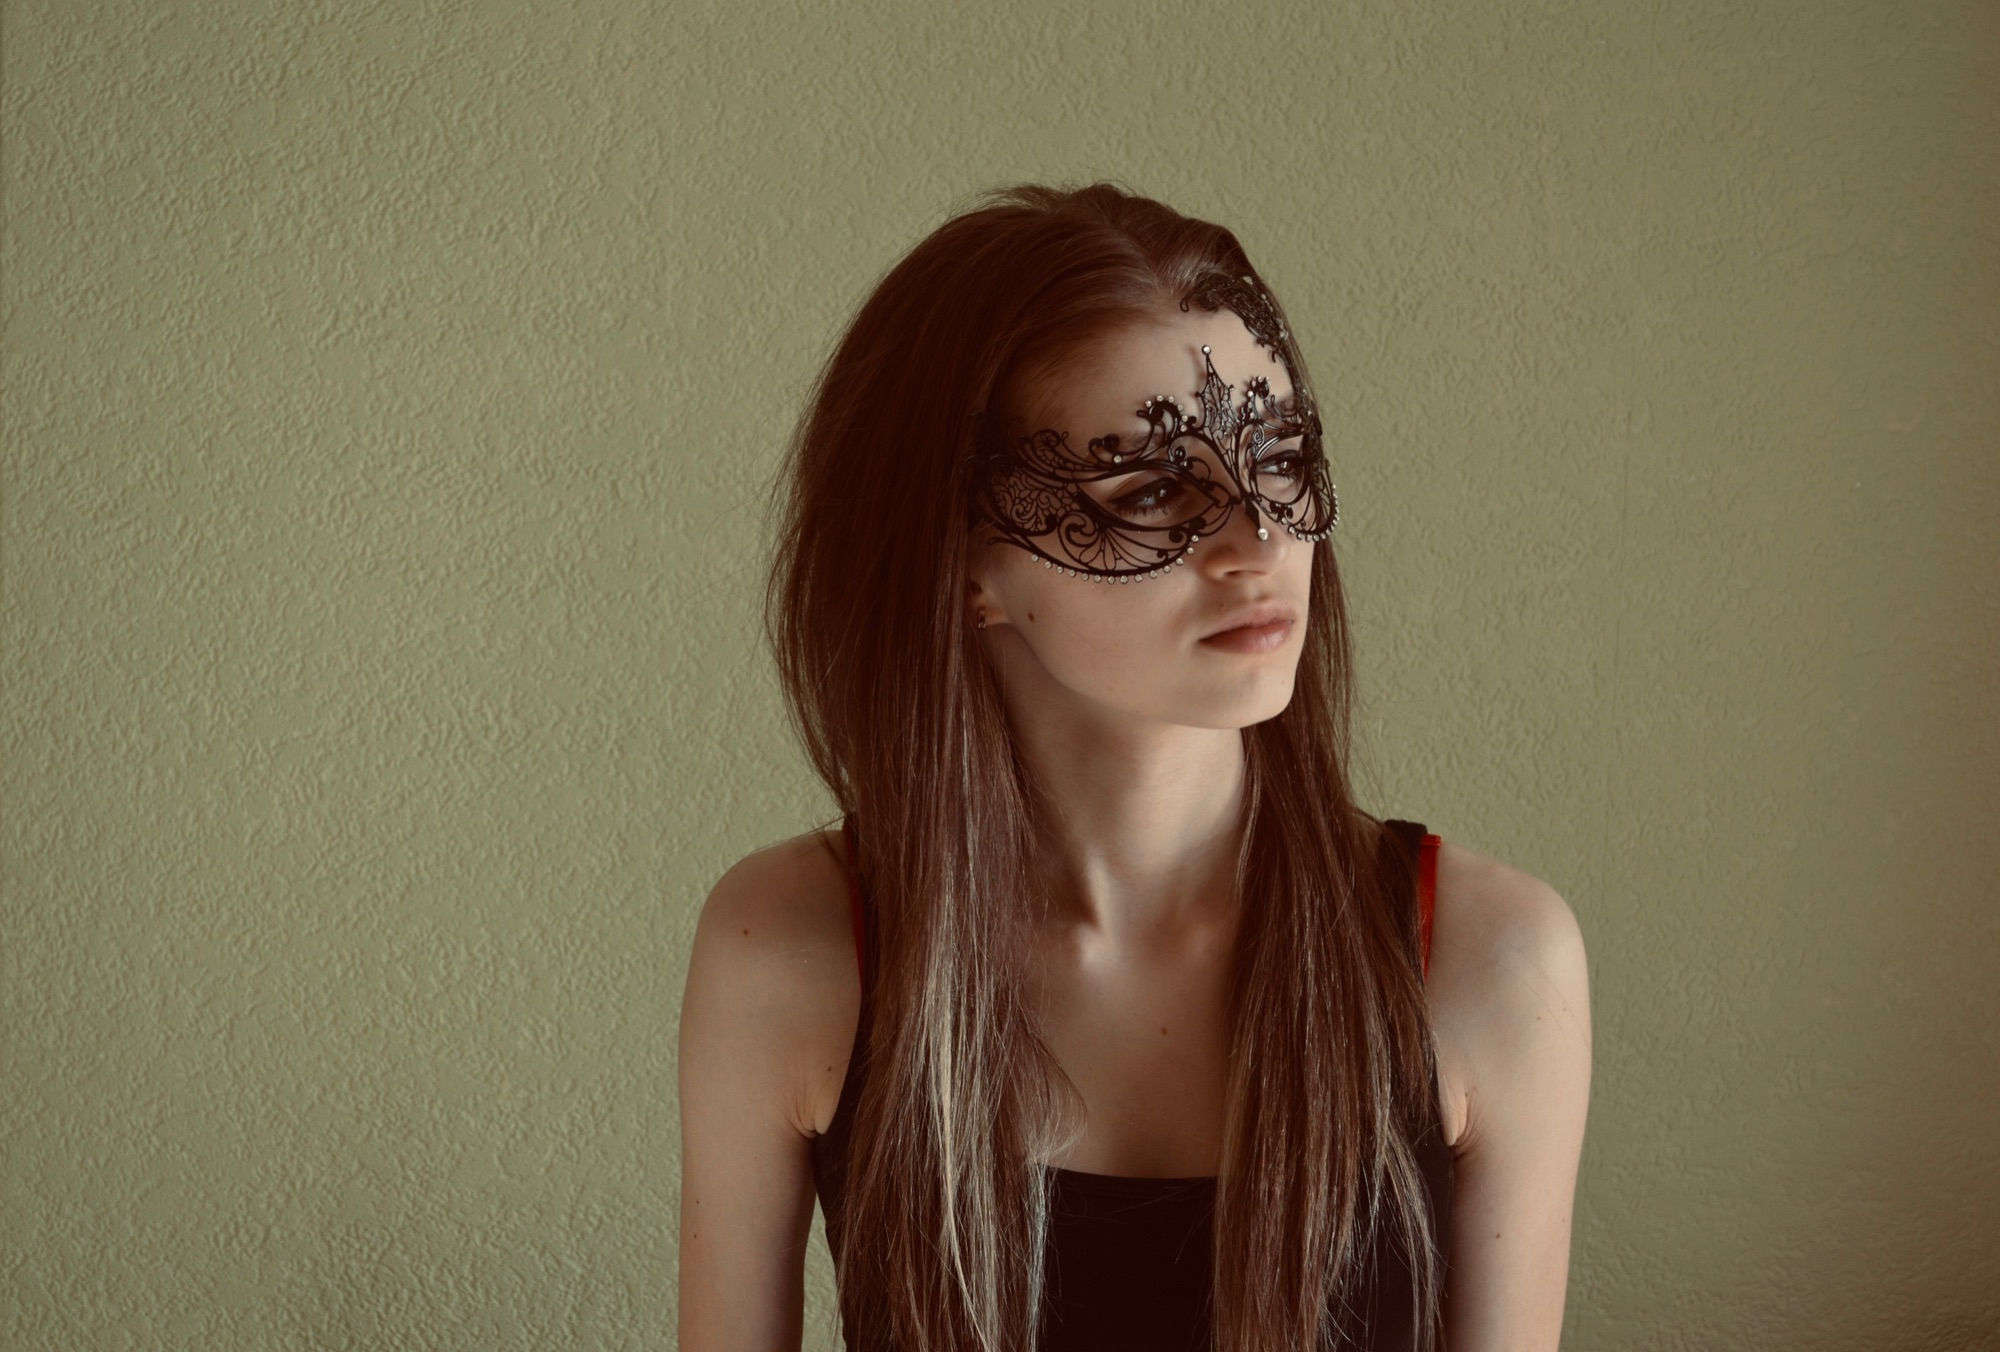 girl wearing a masked ball mask for her school project